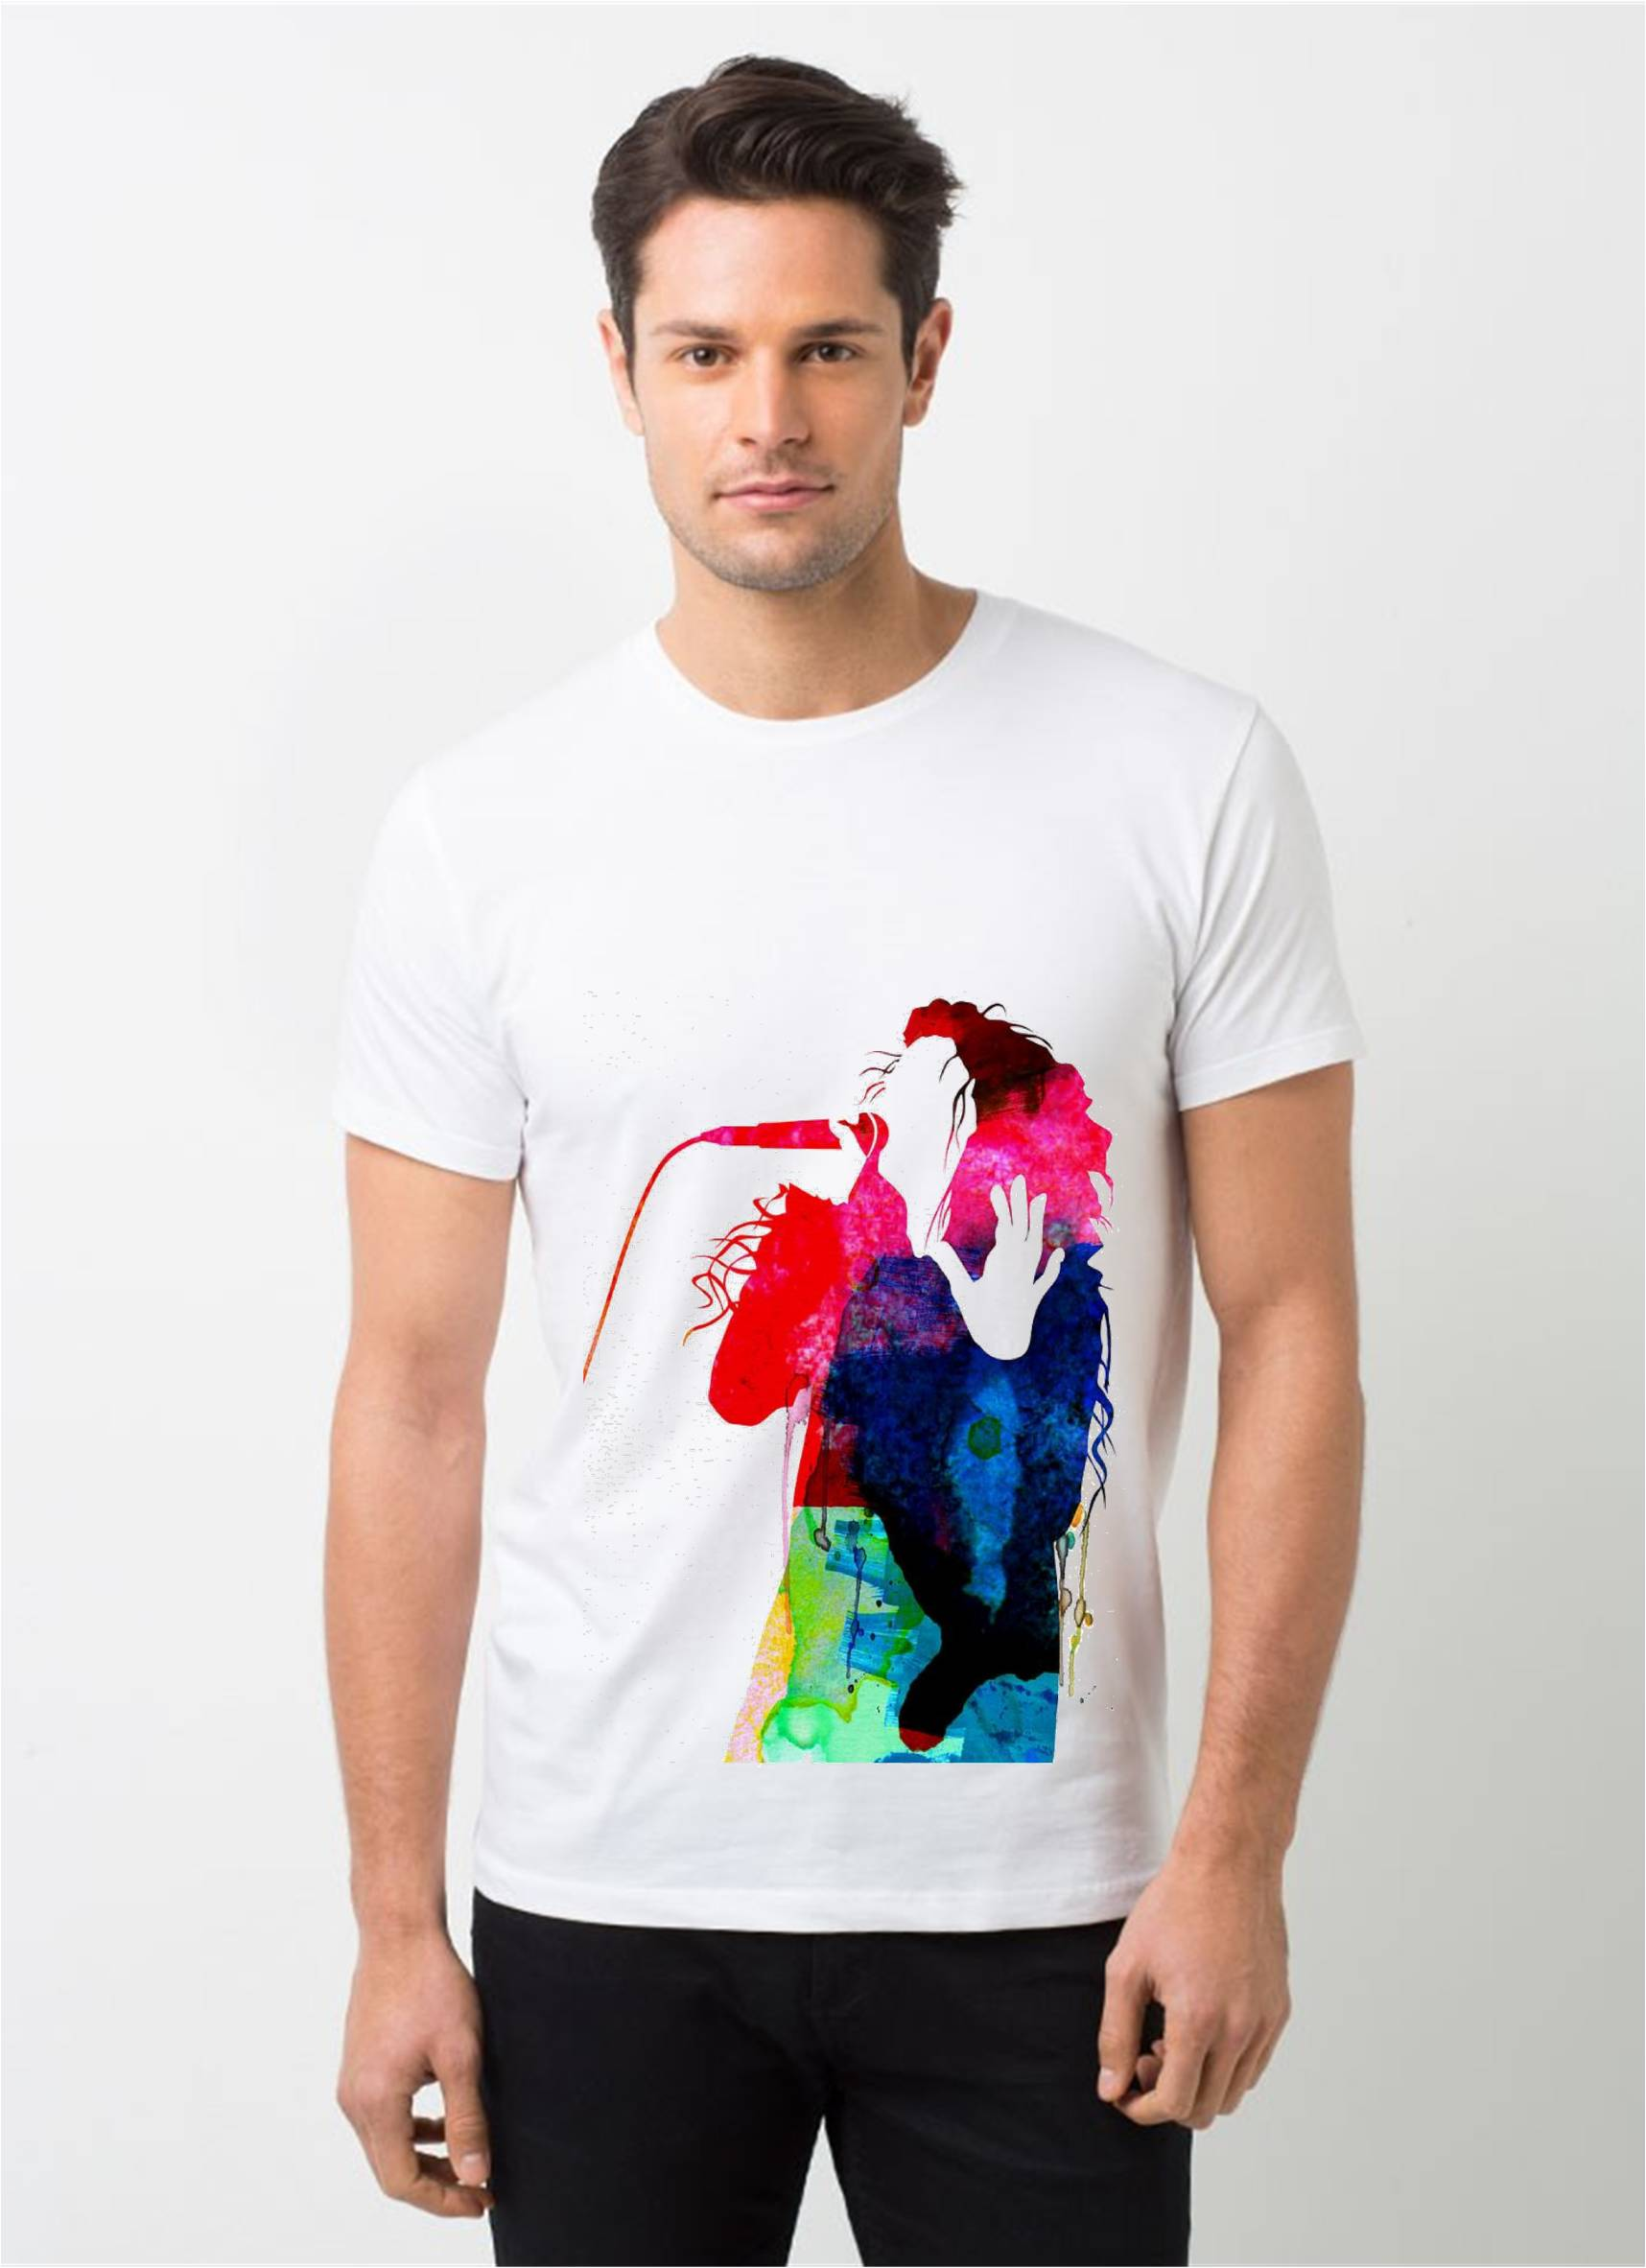 HamsaMART White Round Neck Printed T-Shirt For Men -T305